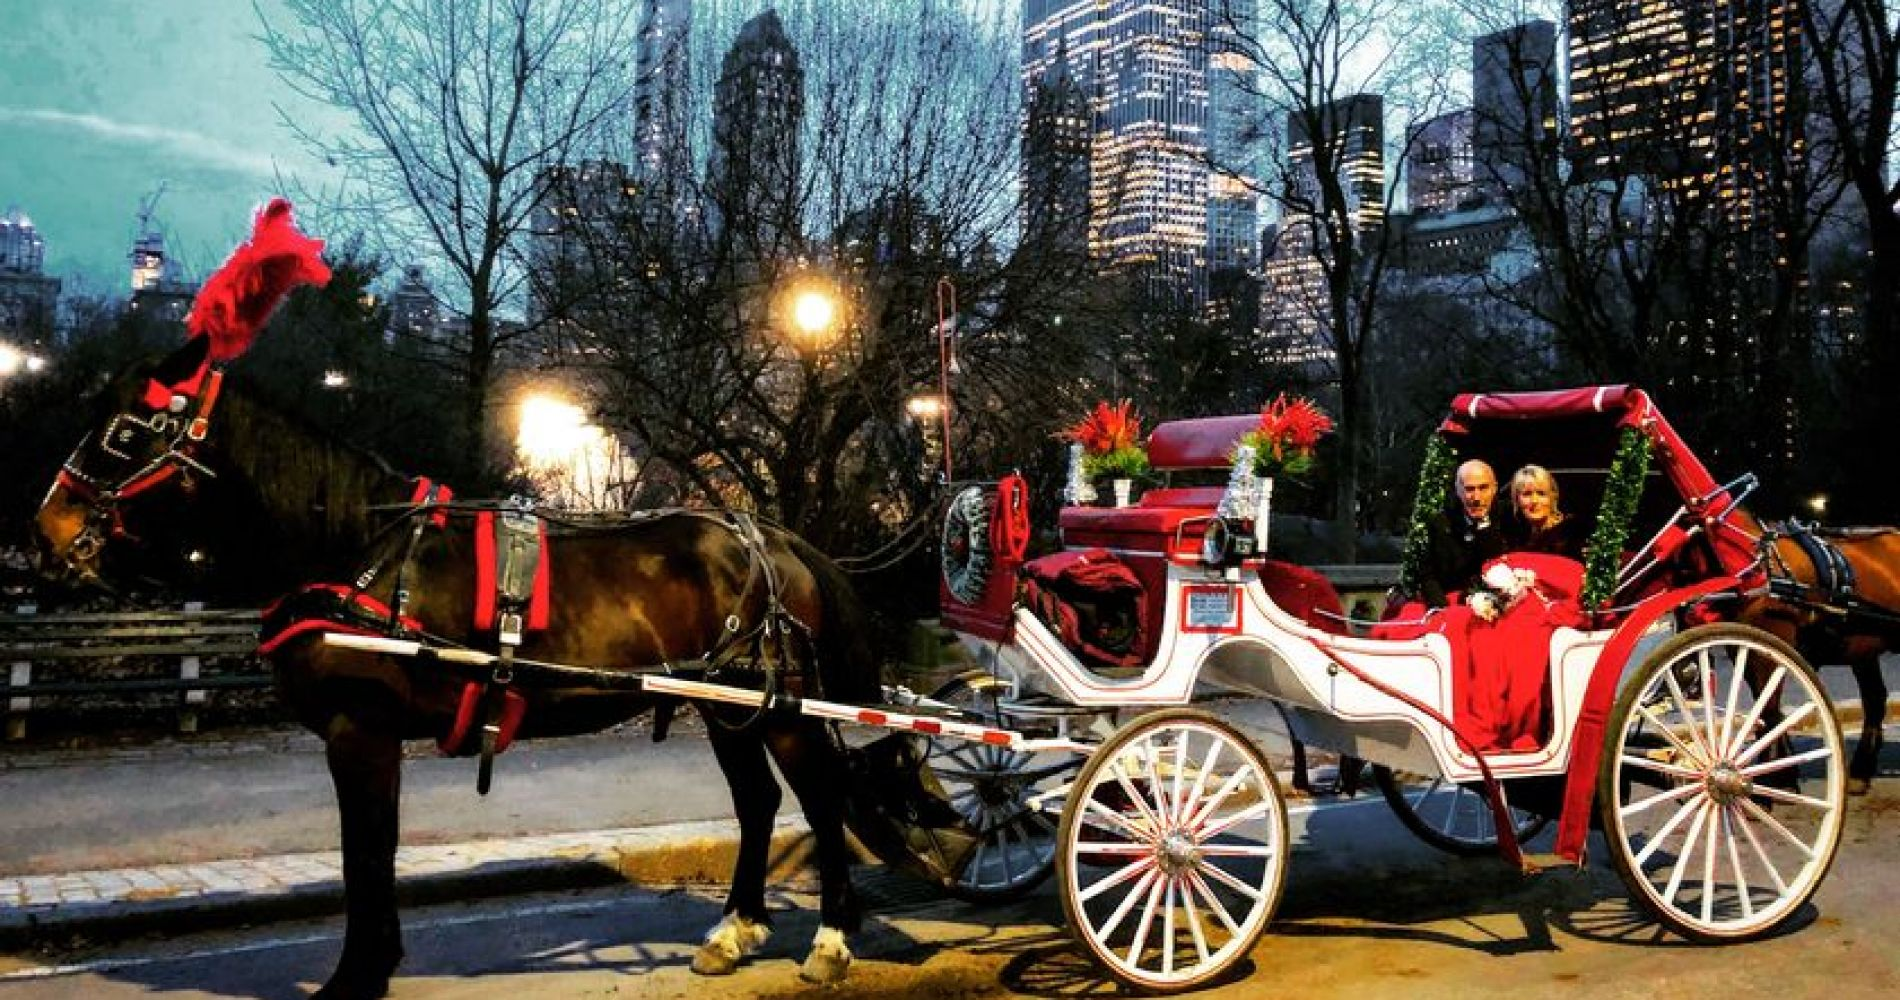 New York City Horse Carriage Ride for 4 people or Fewer